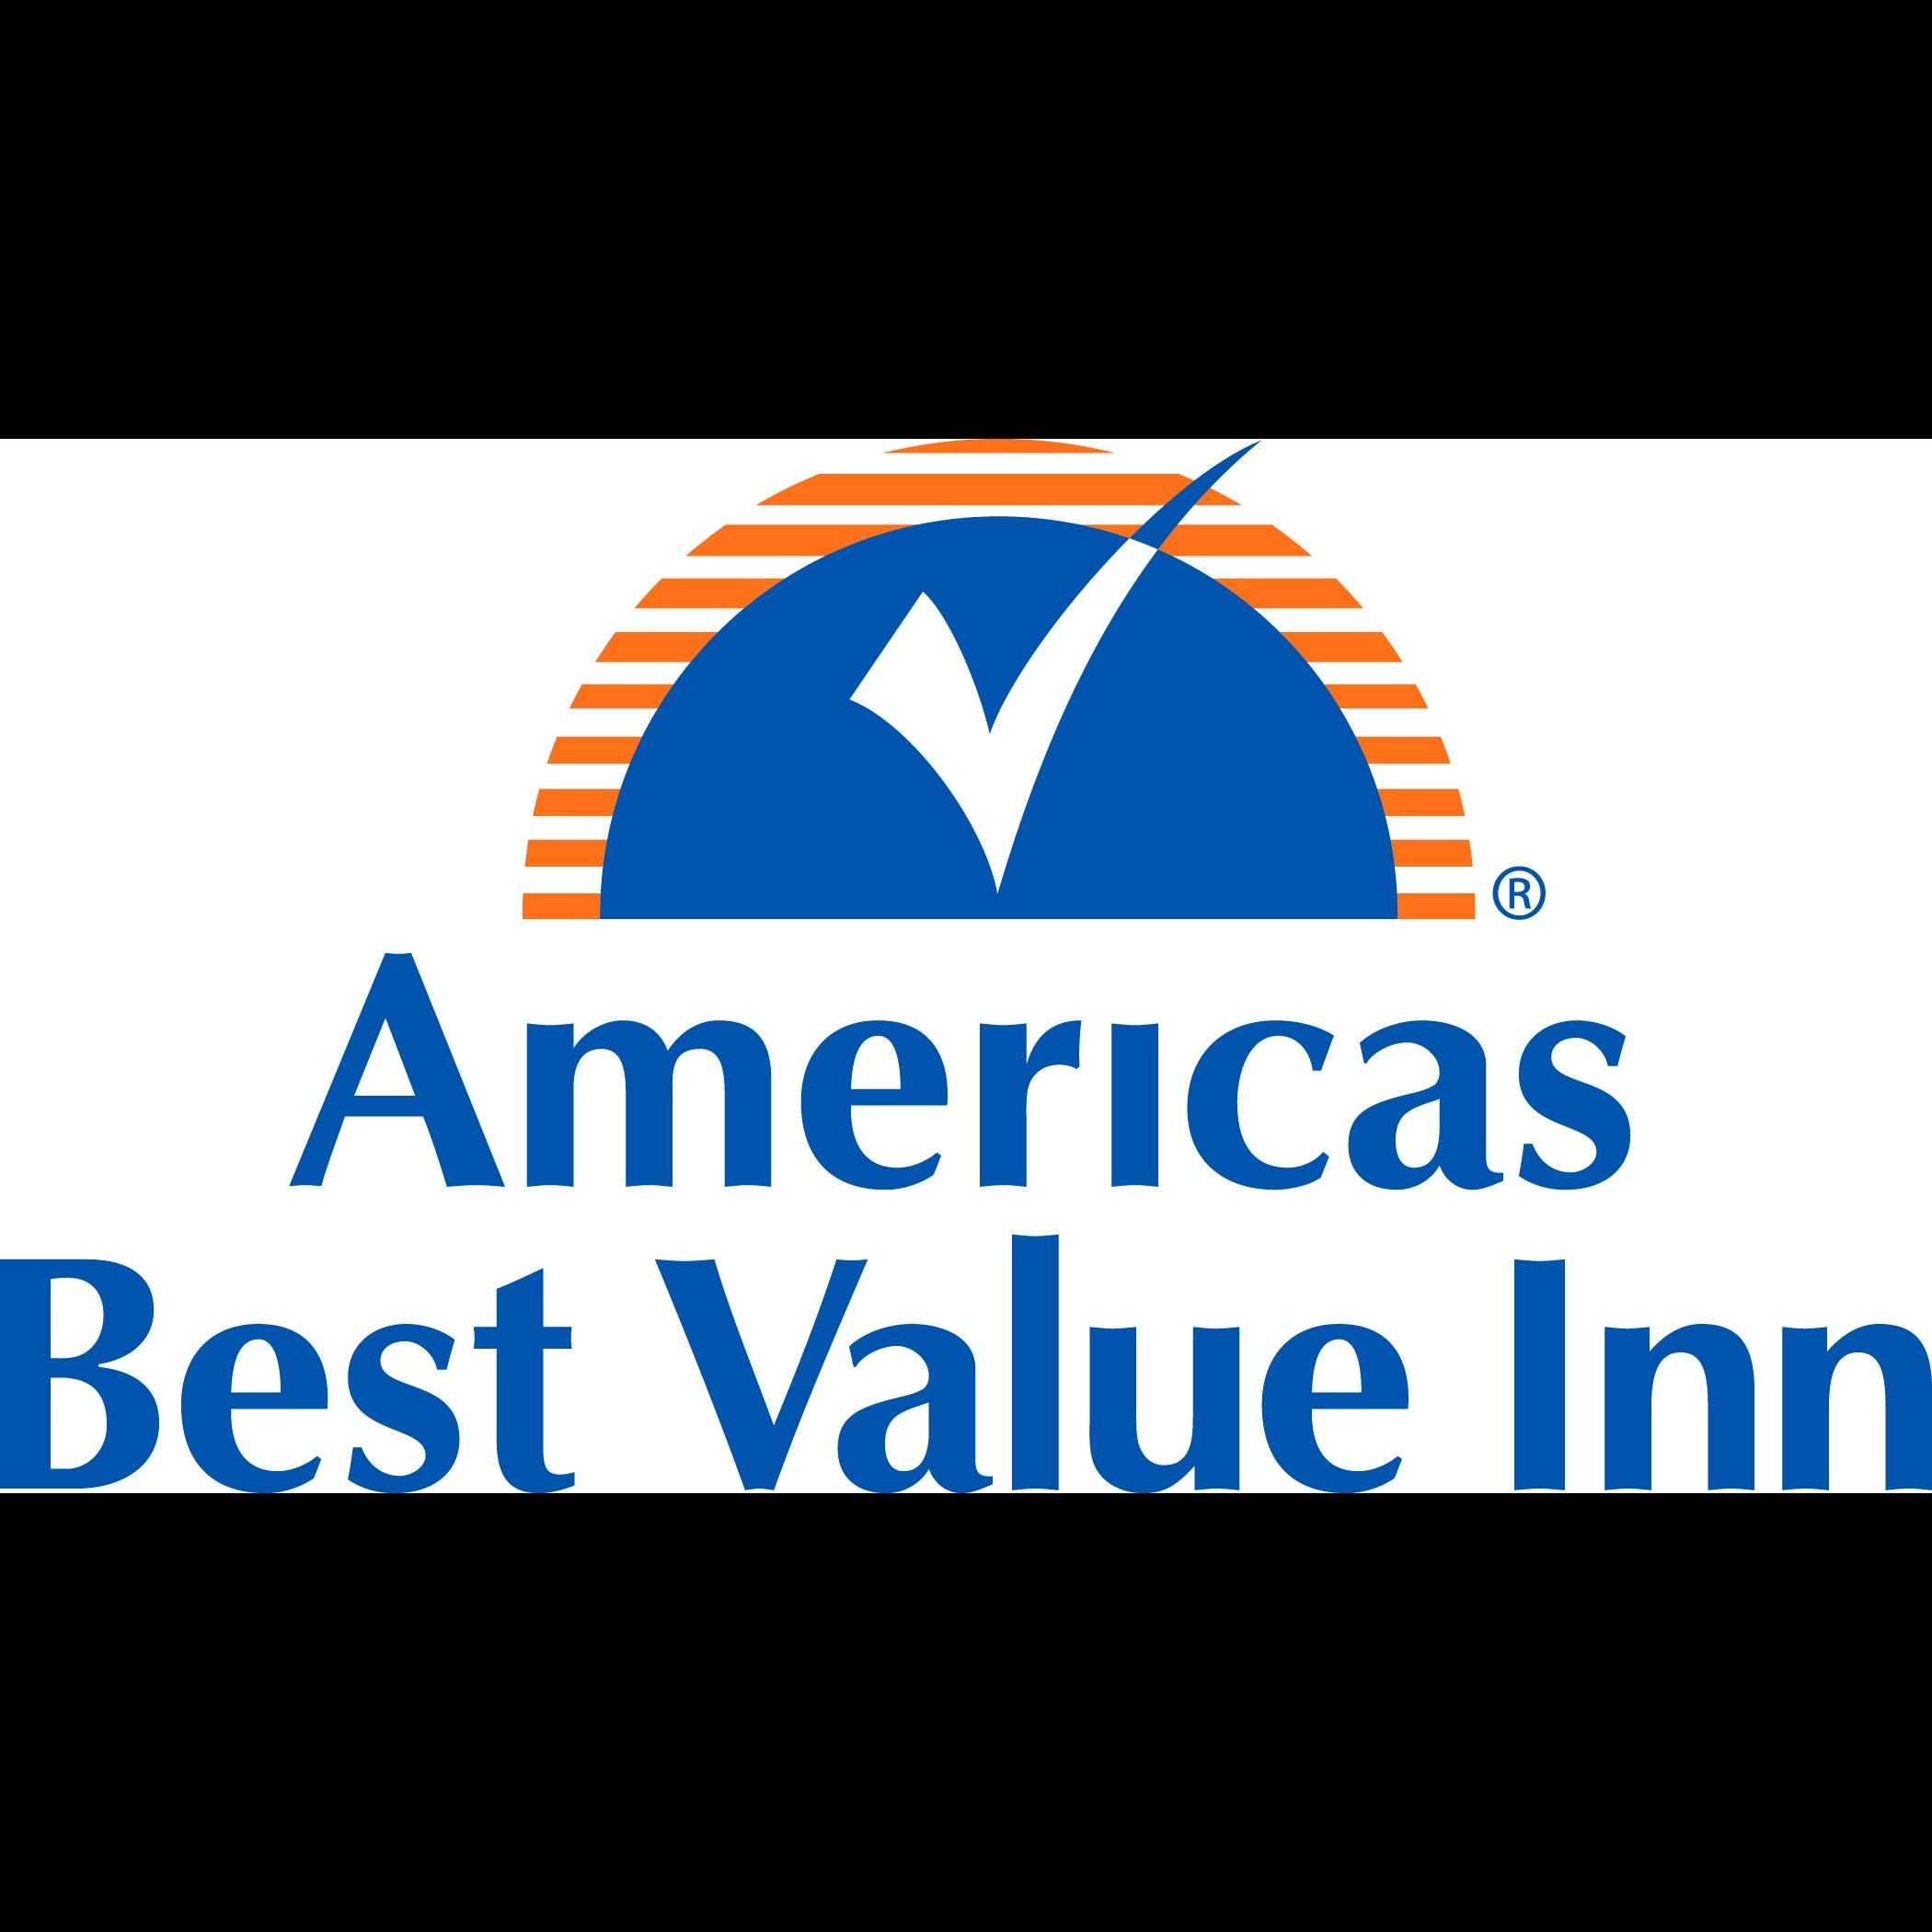 Americas Best Value Inn and Suites Branson - Branson, MO - Hotels & Motels